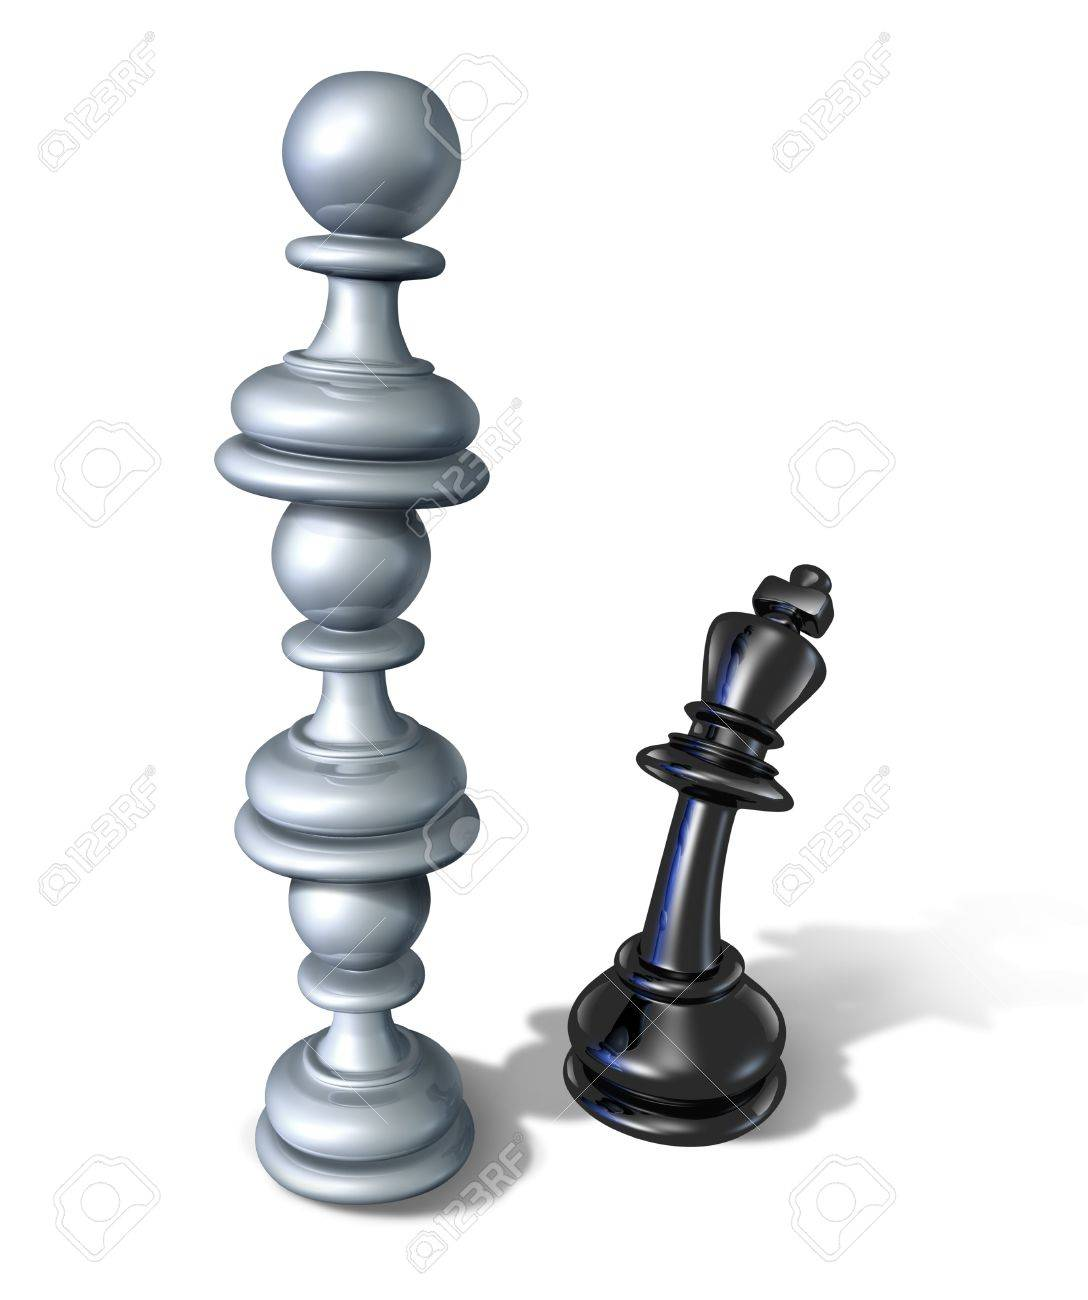 Business team symbol and teaming up to defeat a powerful opponent with three chess pawns stacked one on top of each other Stock Photo - 16375320